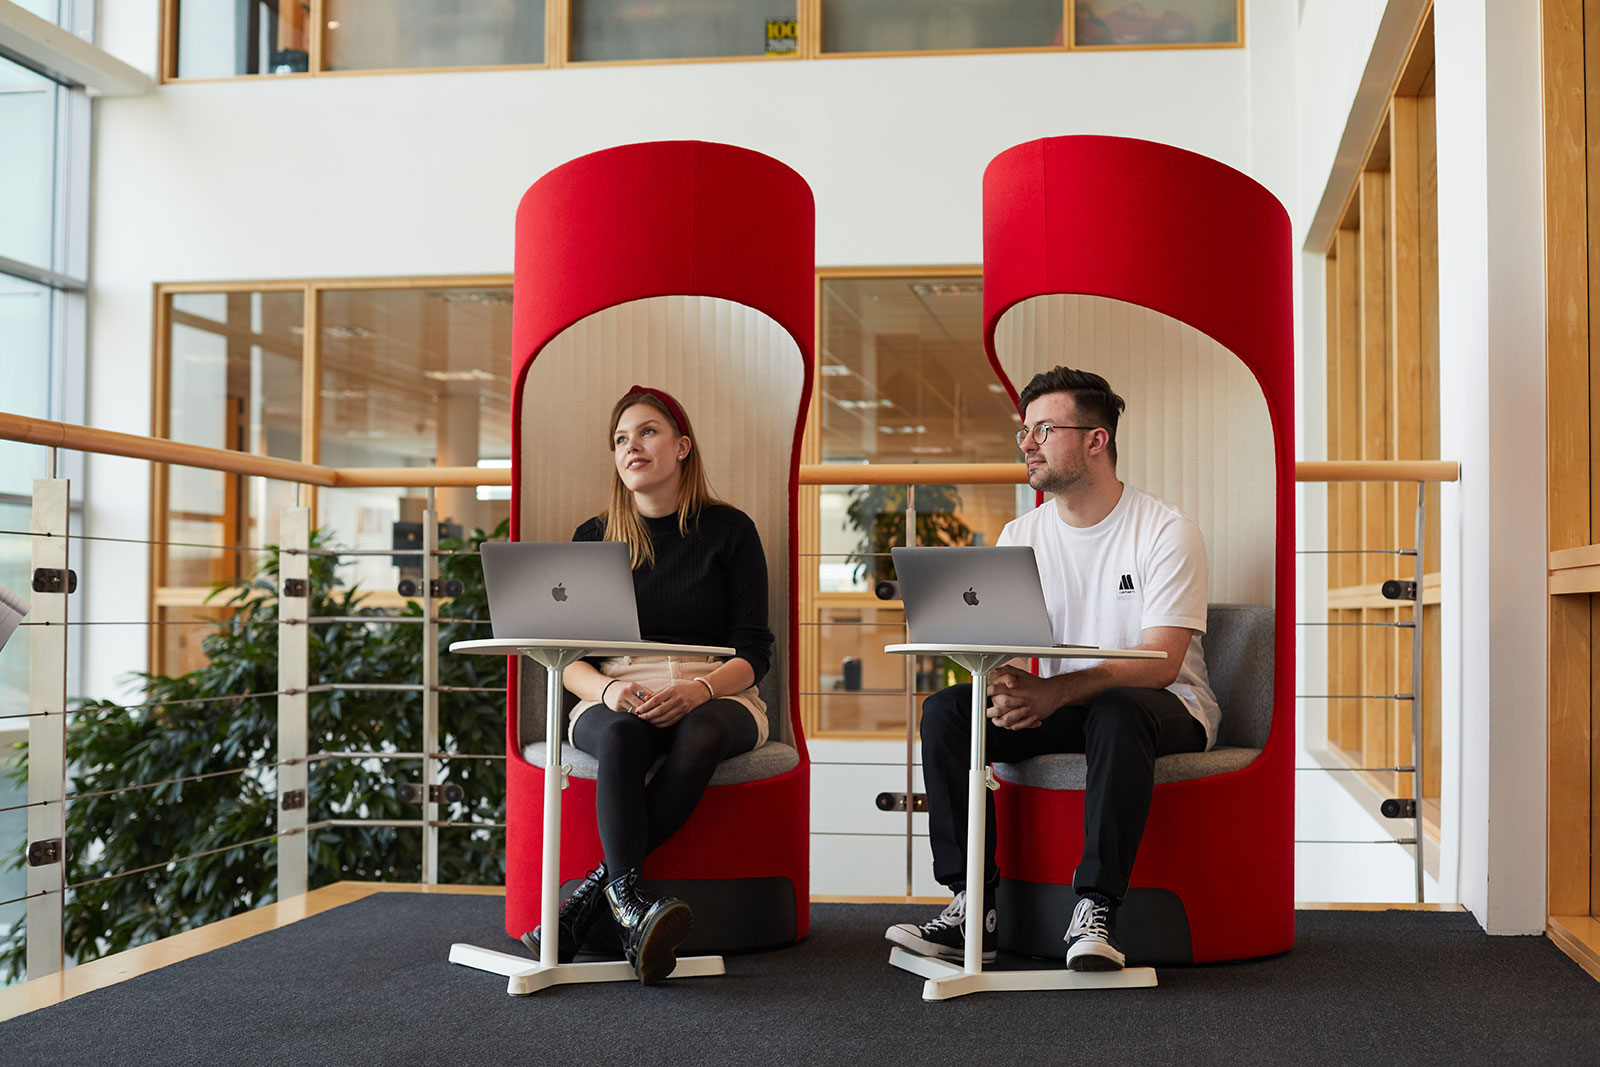 Elena Lockyer and Callum Brown sit in red pods in Redgate with their laptops in front of them